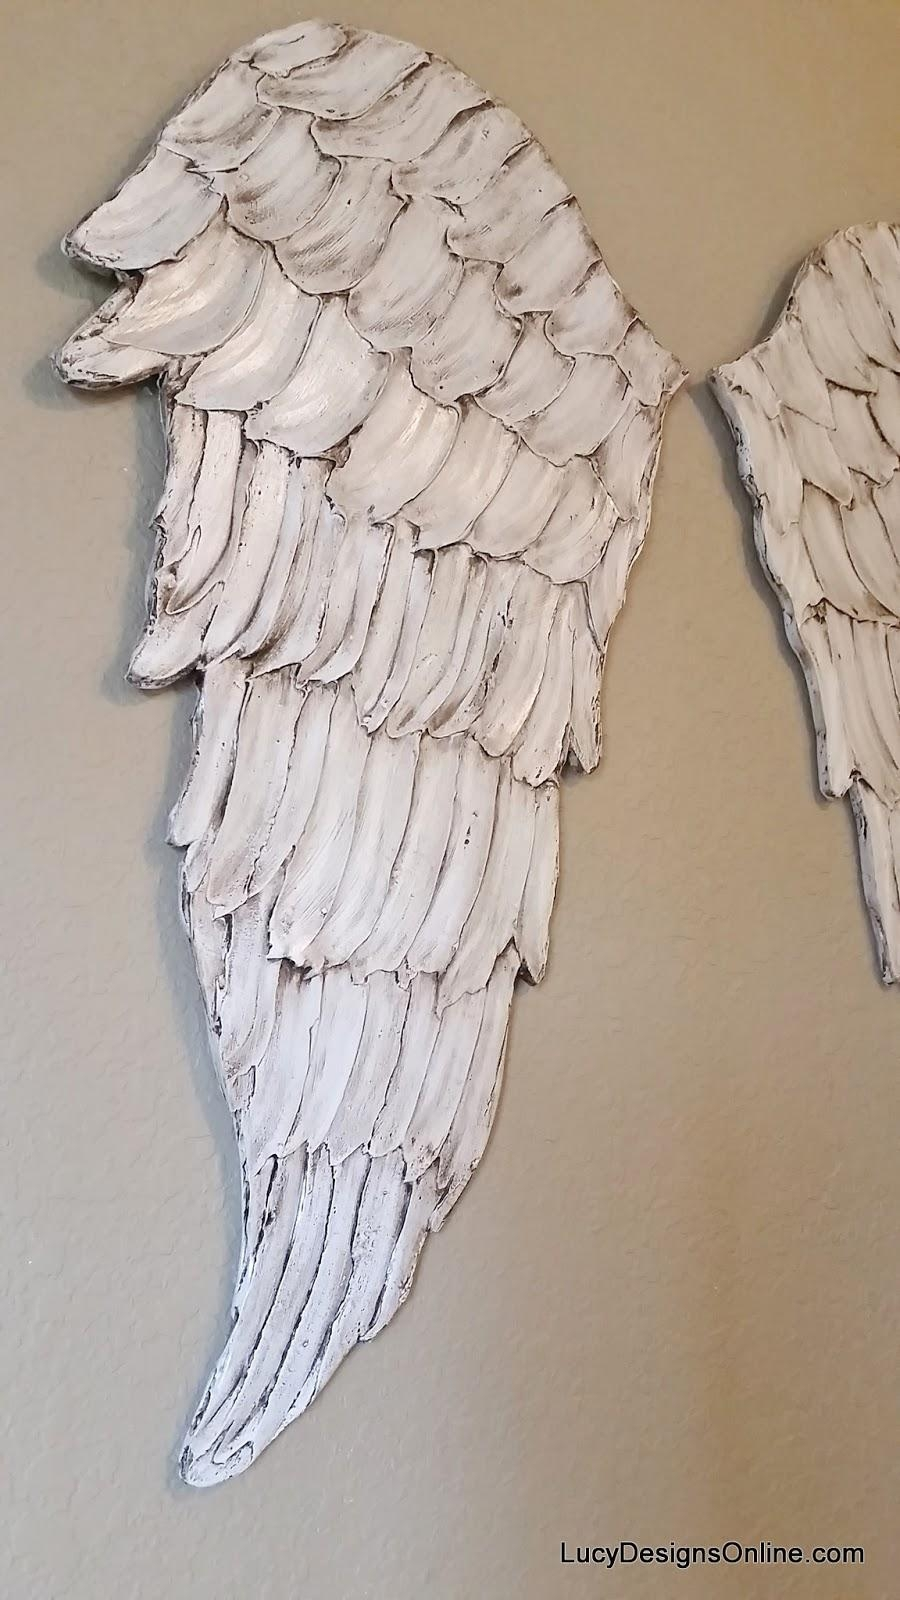 Angel Wings Textured Wood, Wall Art, Carved Wood Look, Angel Wing Pertaining To Angel Wing Wall Art (Image 5 of 20)